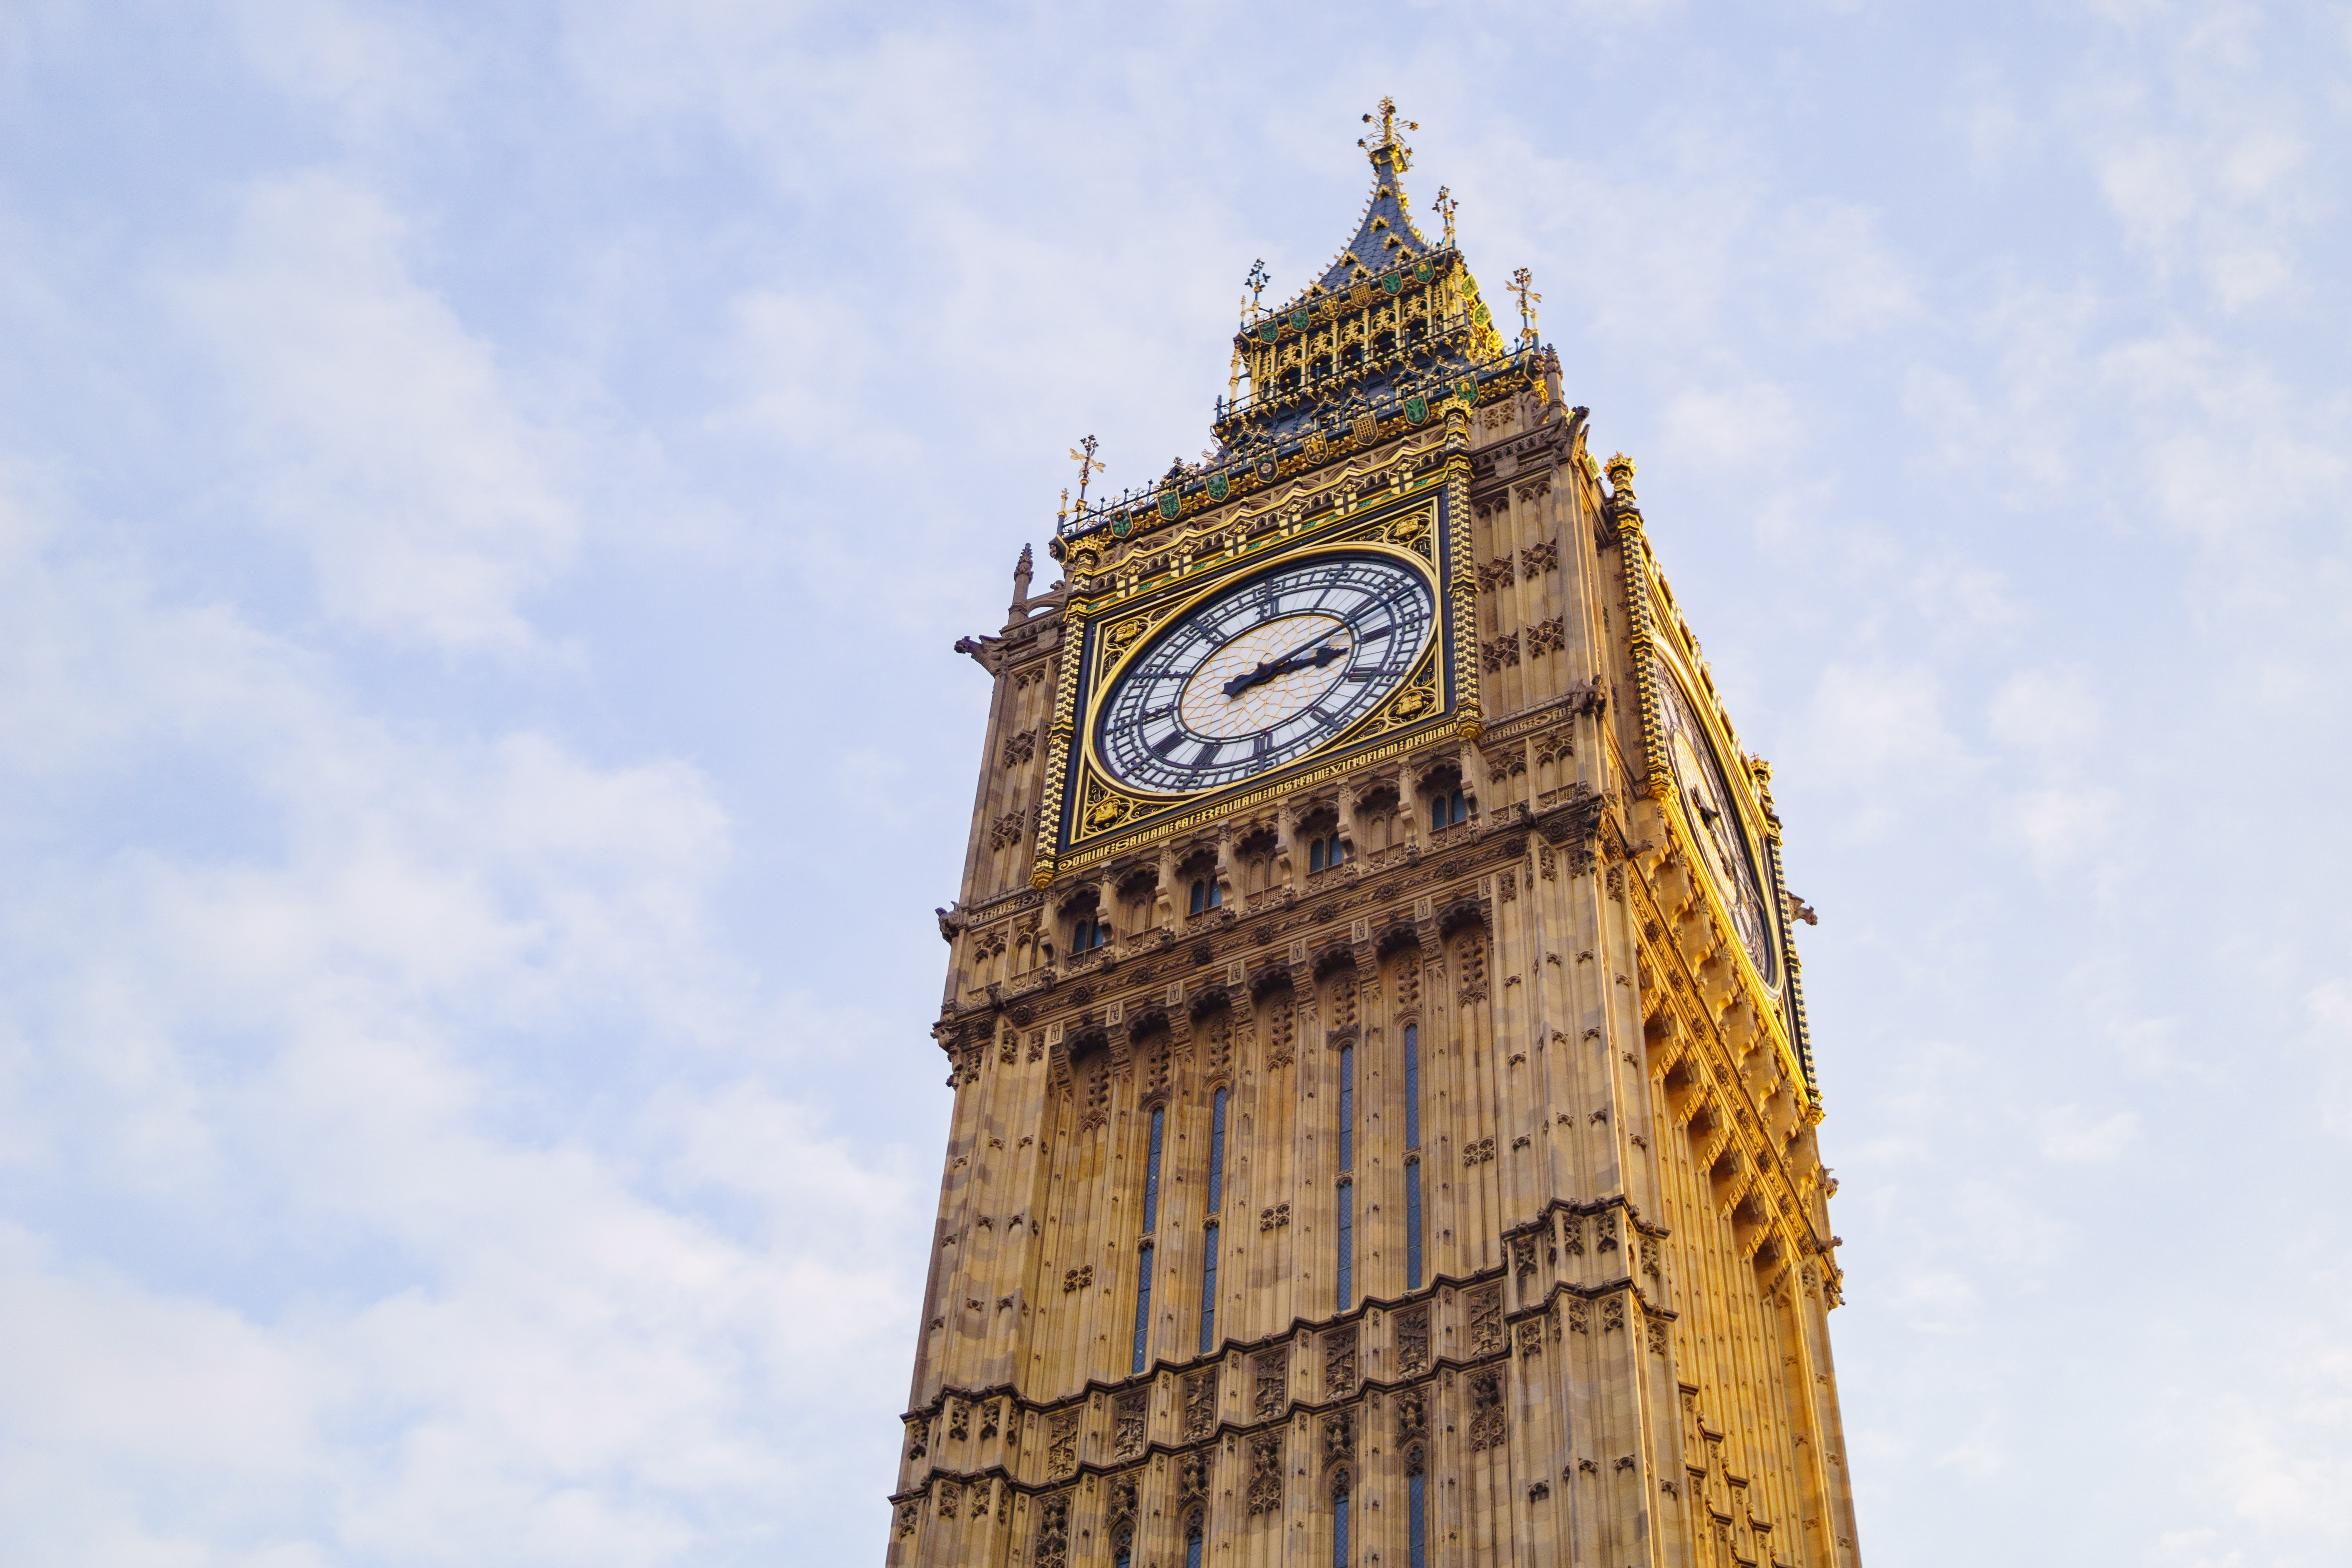 Big Ben clock tower in London with a blue sky and white clouds